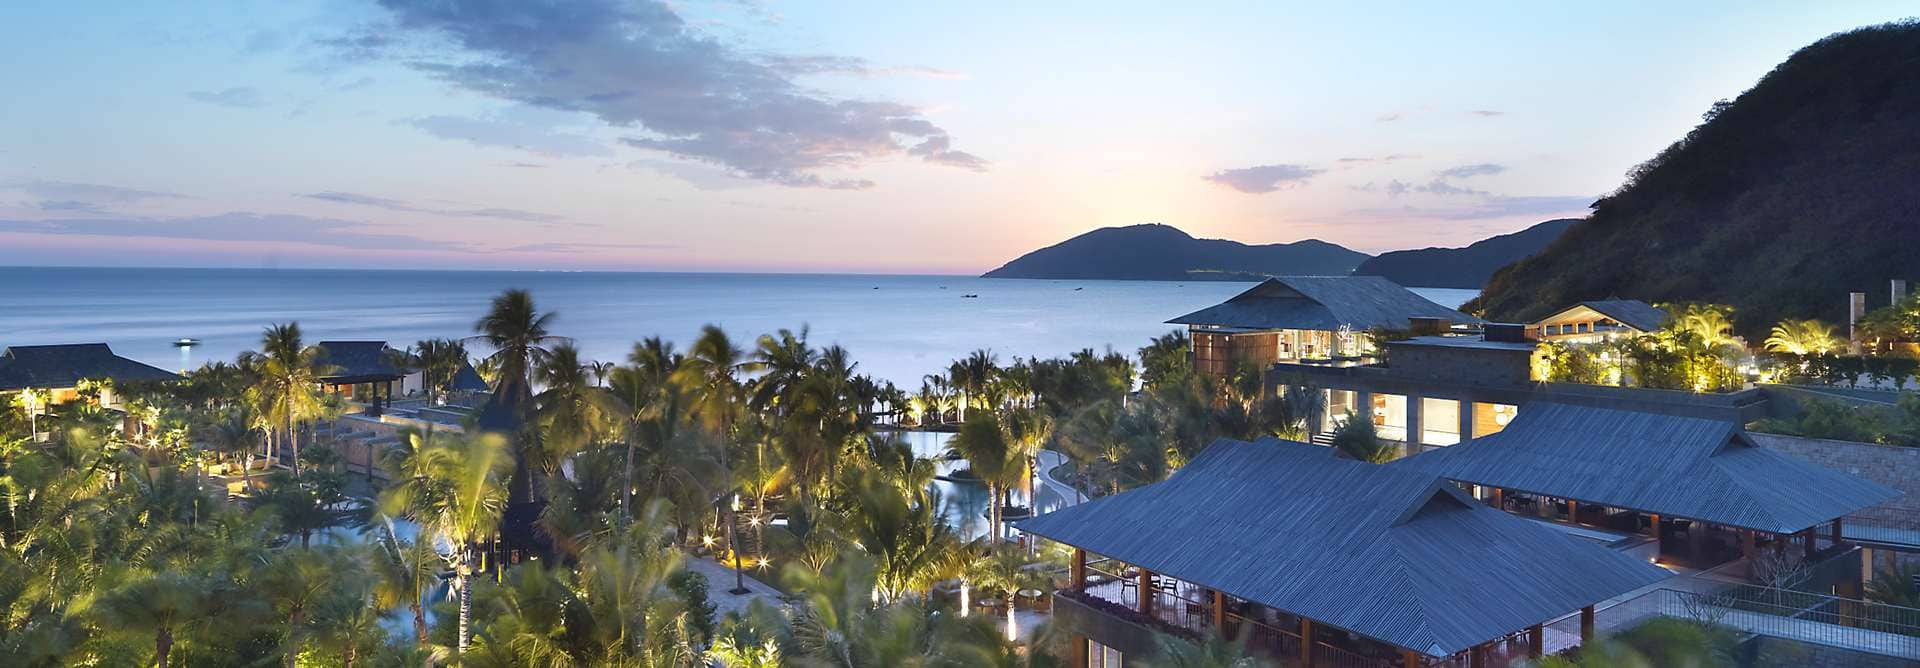 Mandarin Oriental, Sanya is an exclusive island destination with luxurious beach front bungalows and a first class spa.